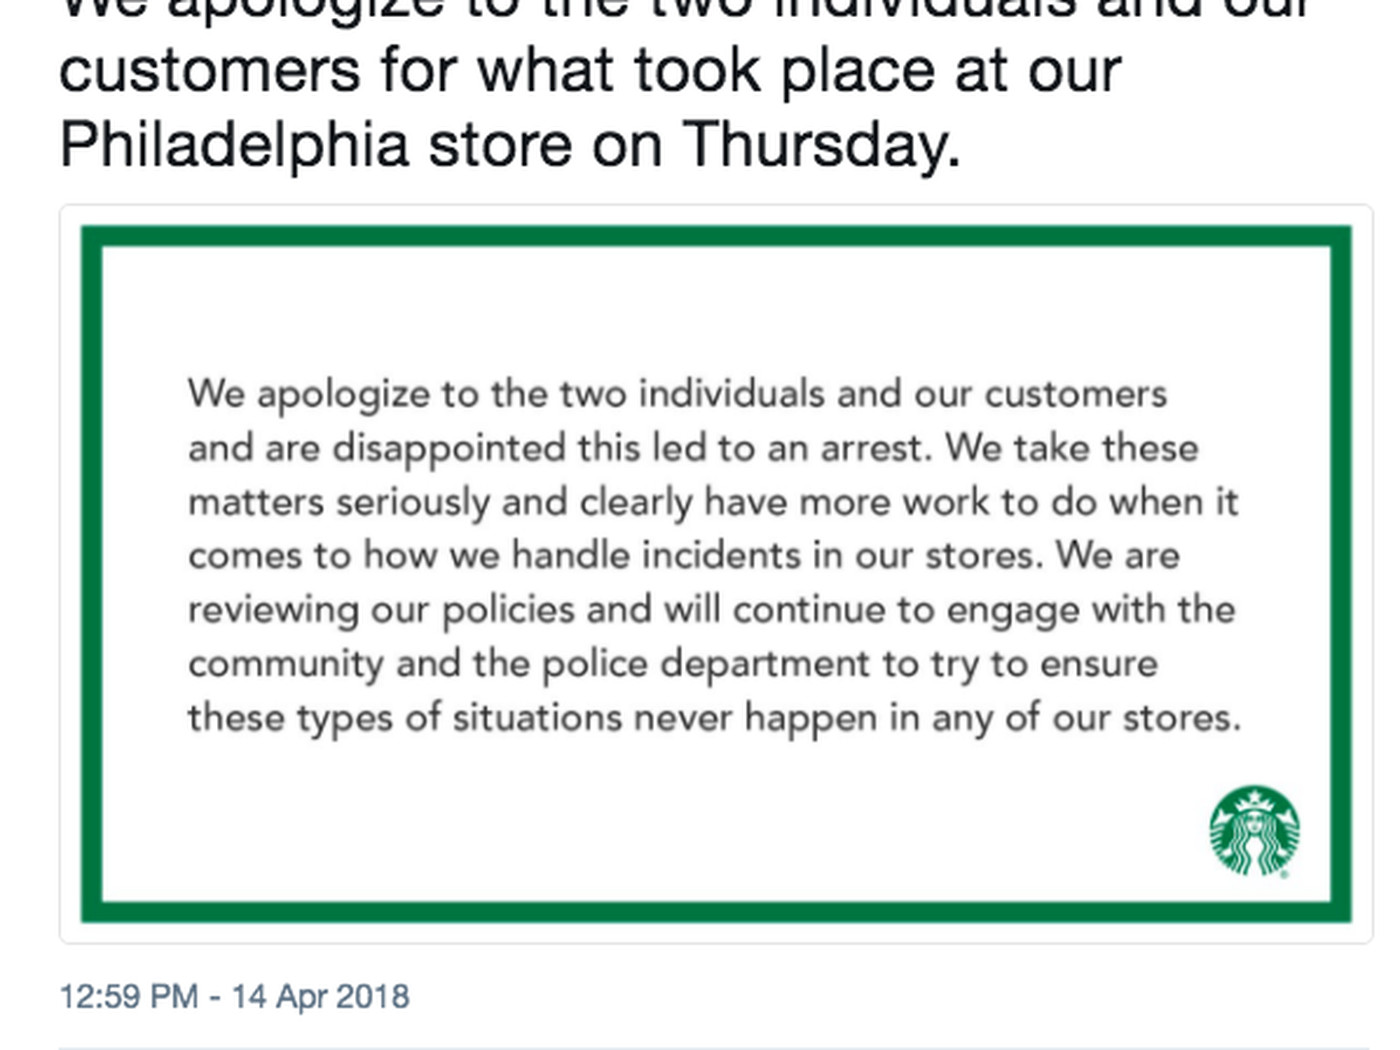 Starbucks had two black men arrested for doing absolutely nothing